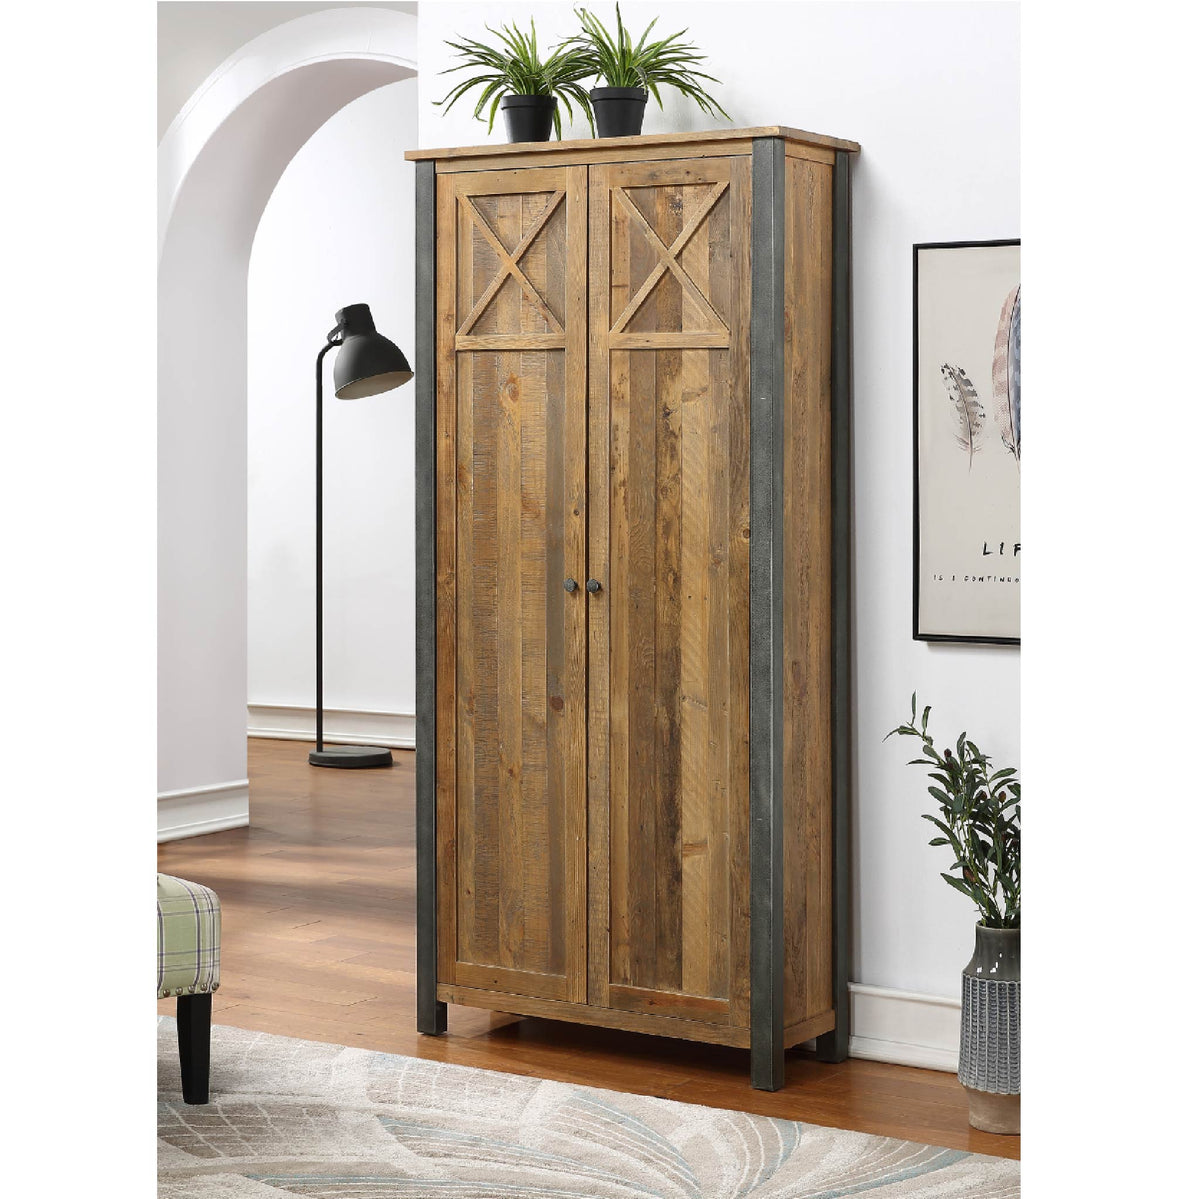 Urban Elegance Reclaimed Wood Living Room Storage Cabinet